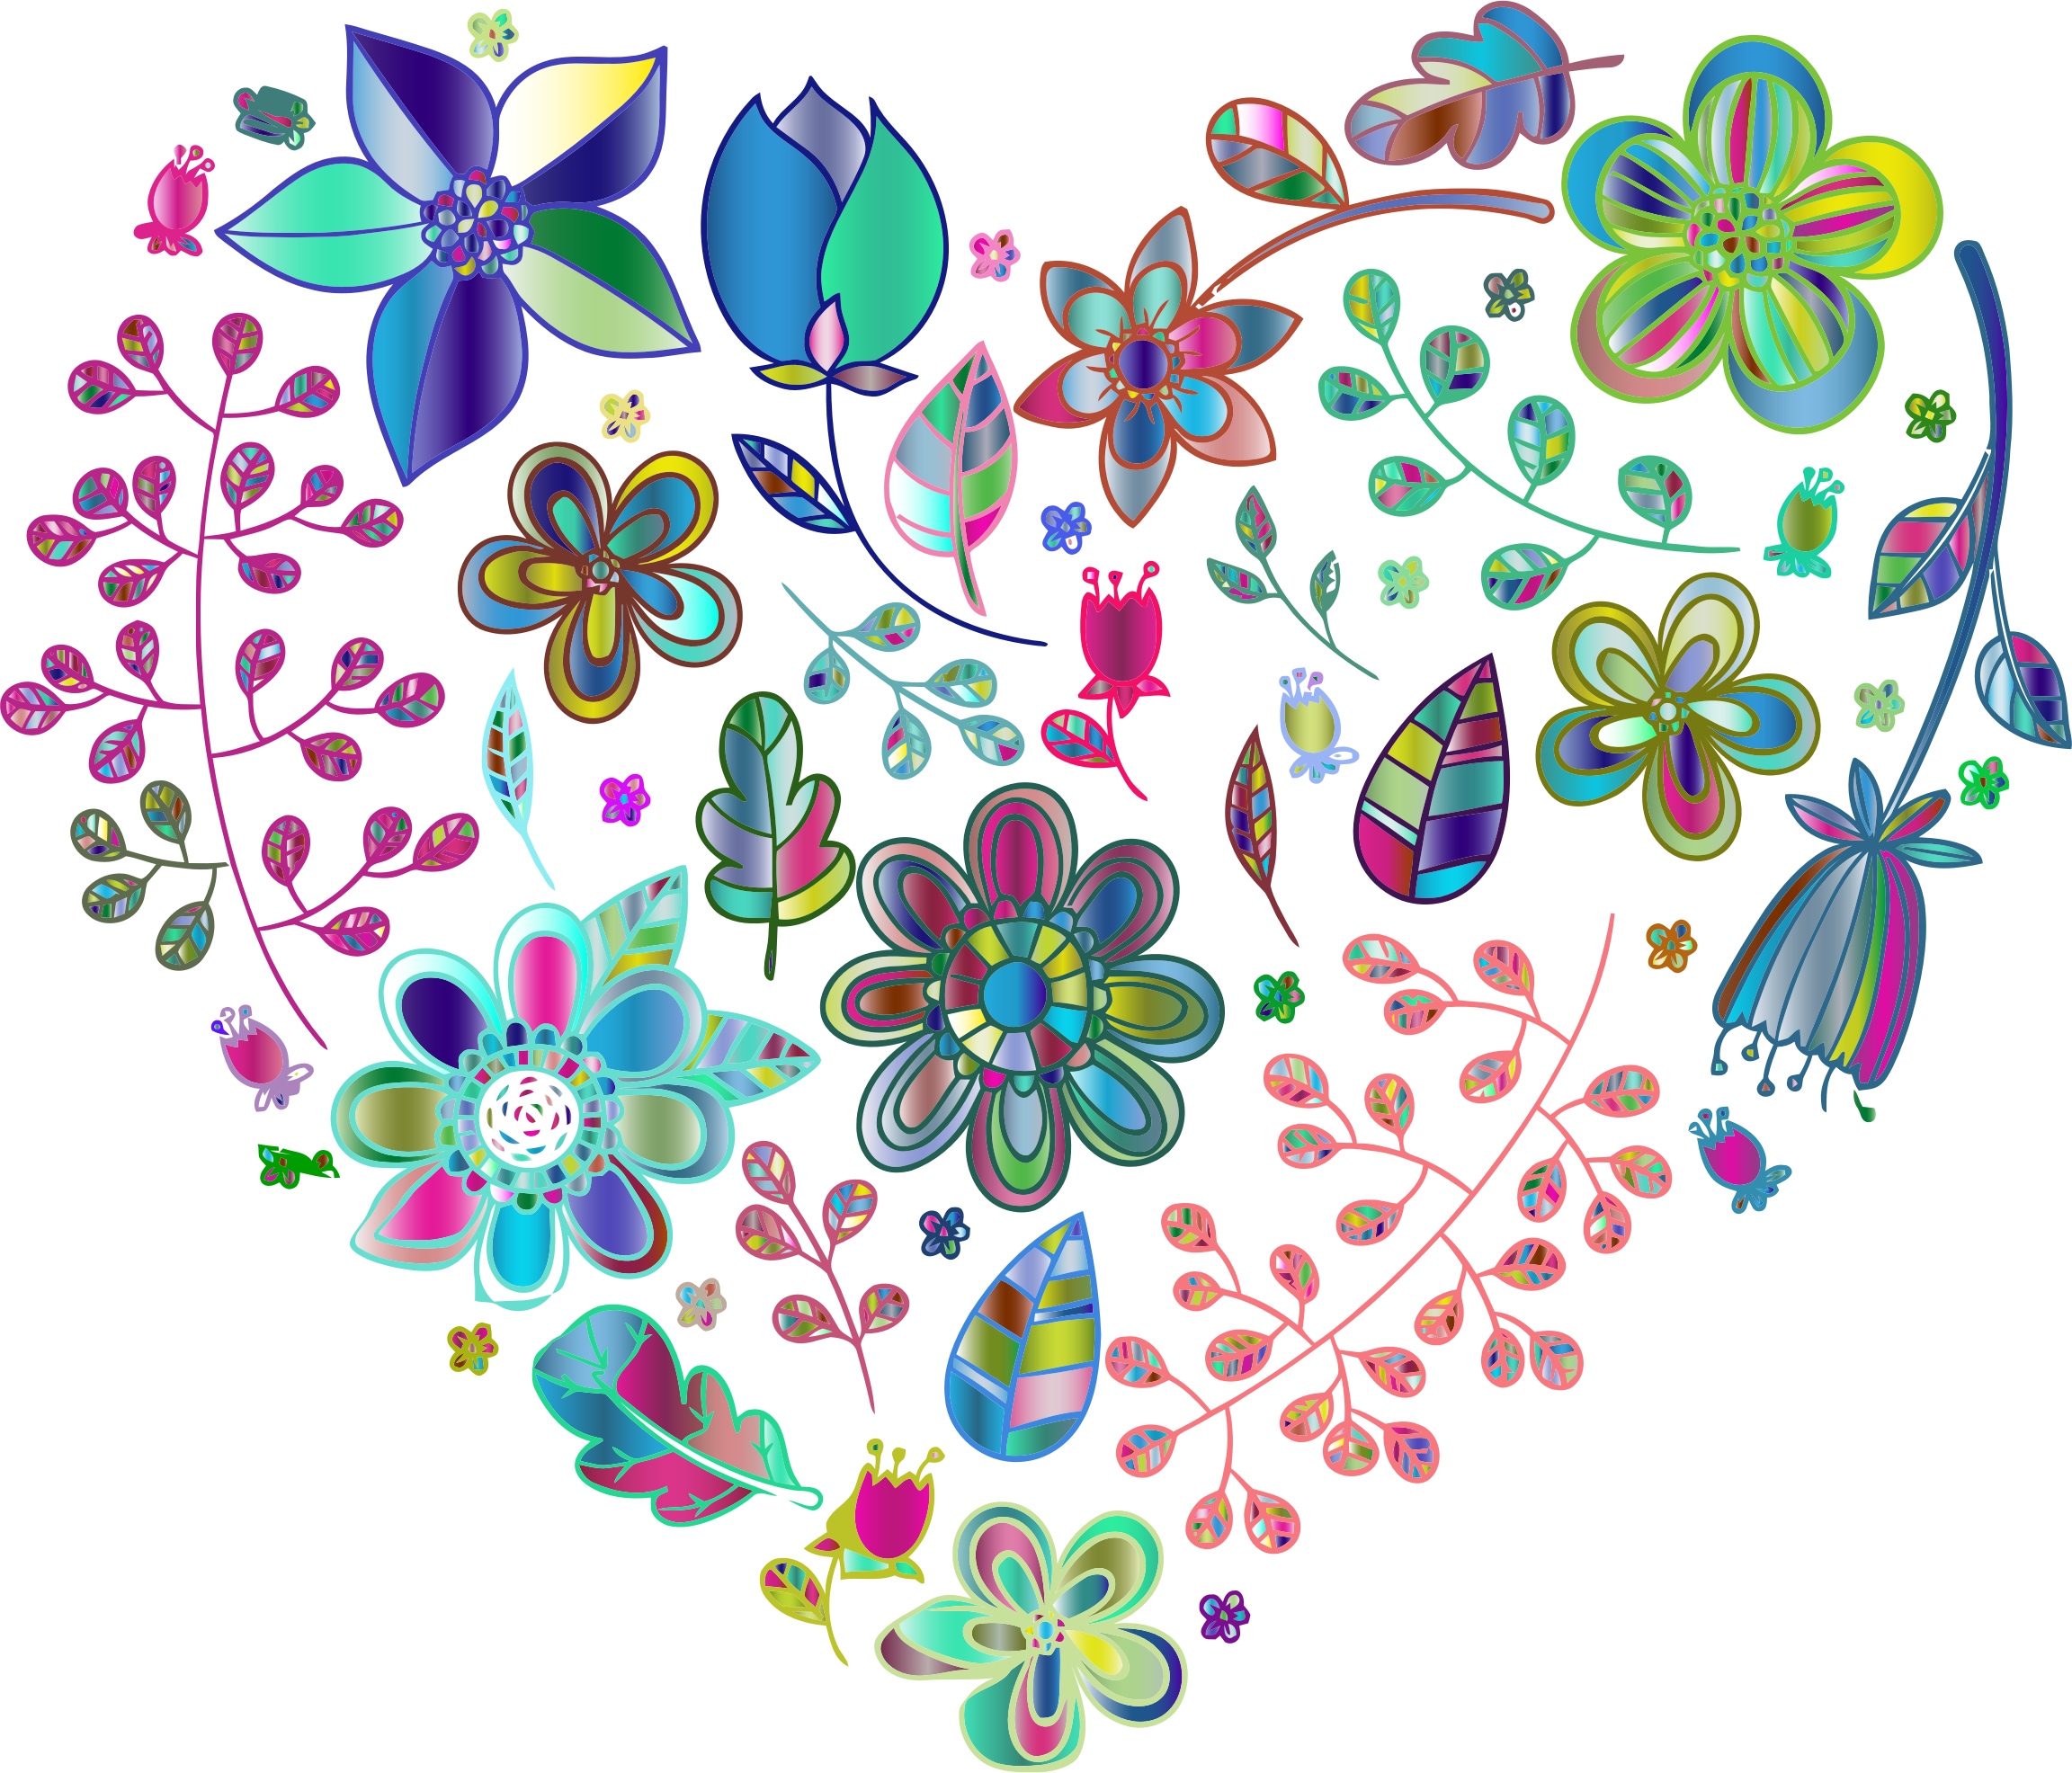 Prismatic Psychedelic Floral Heart No Background by GDJ